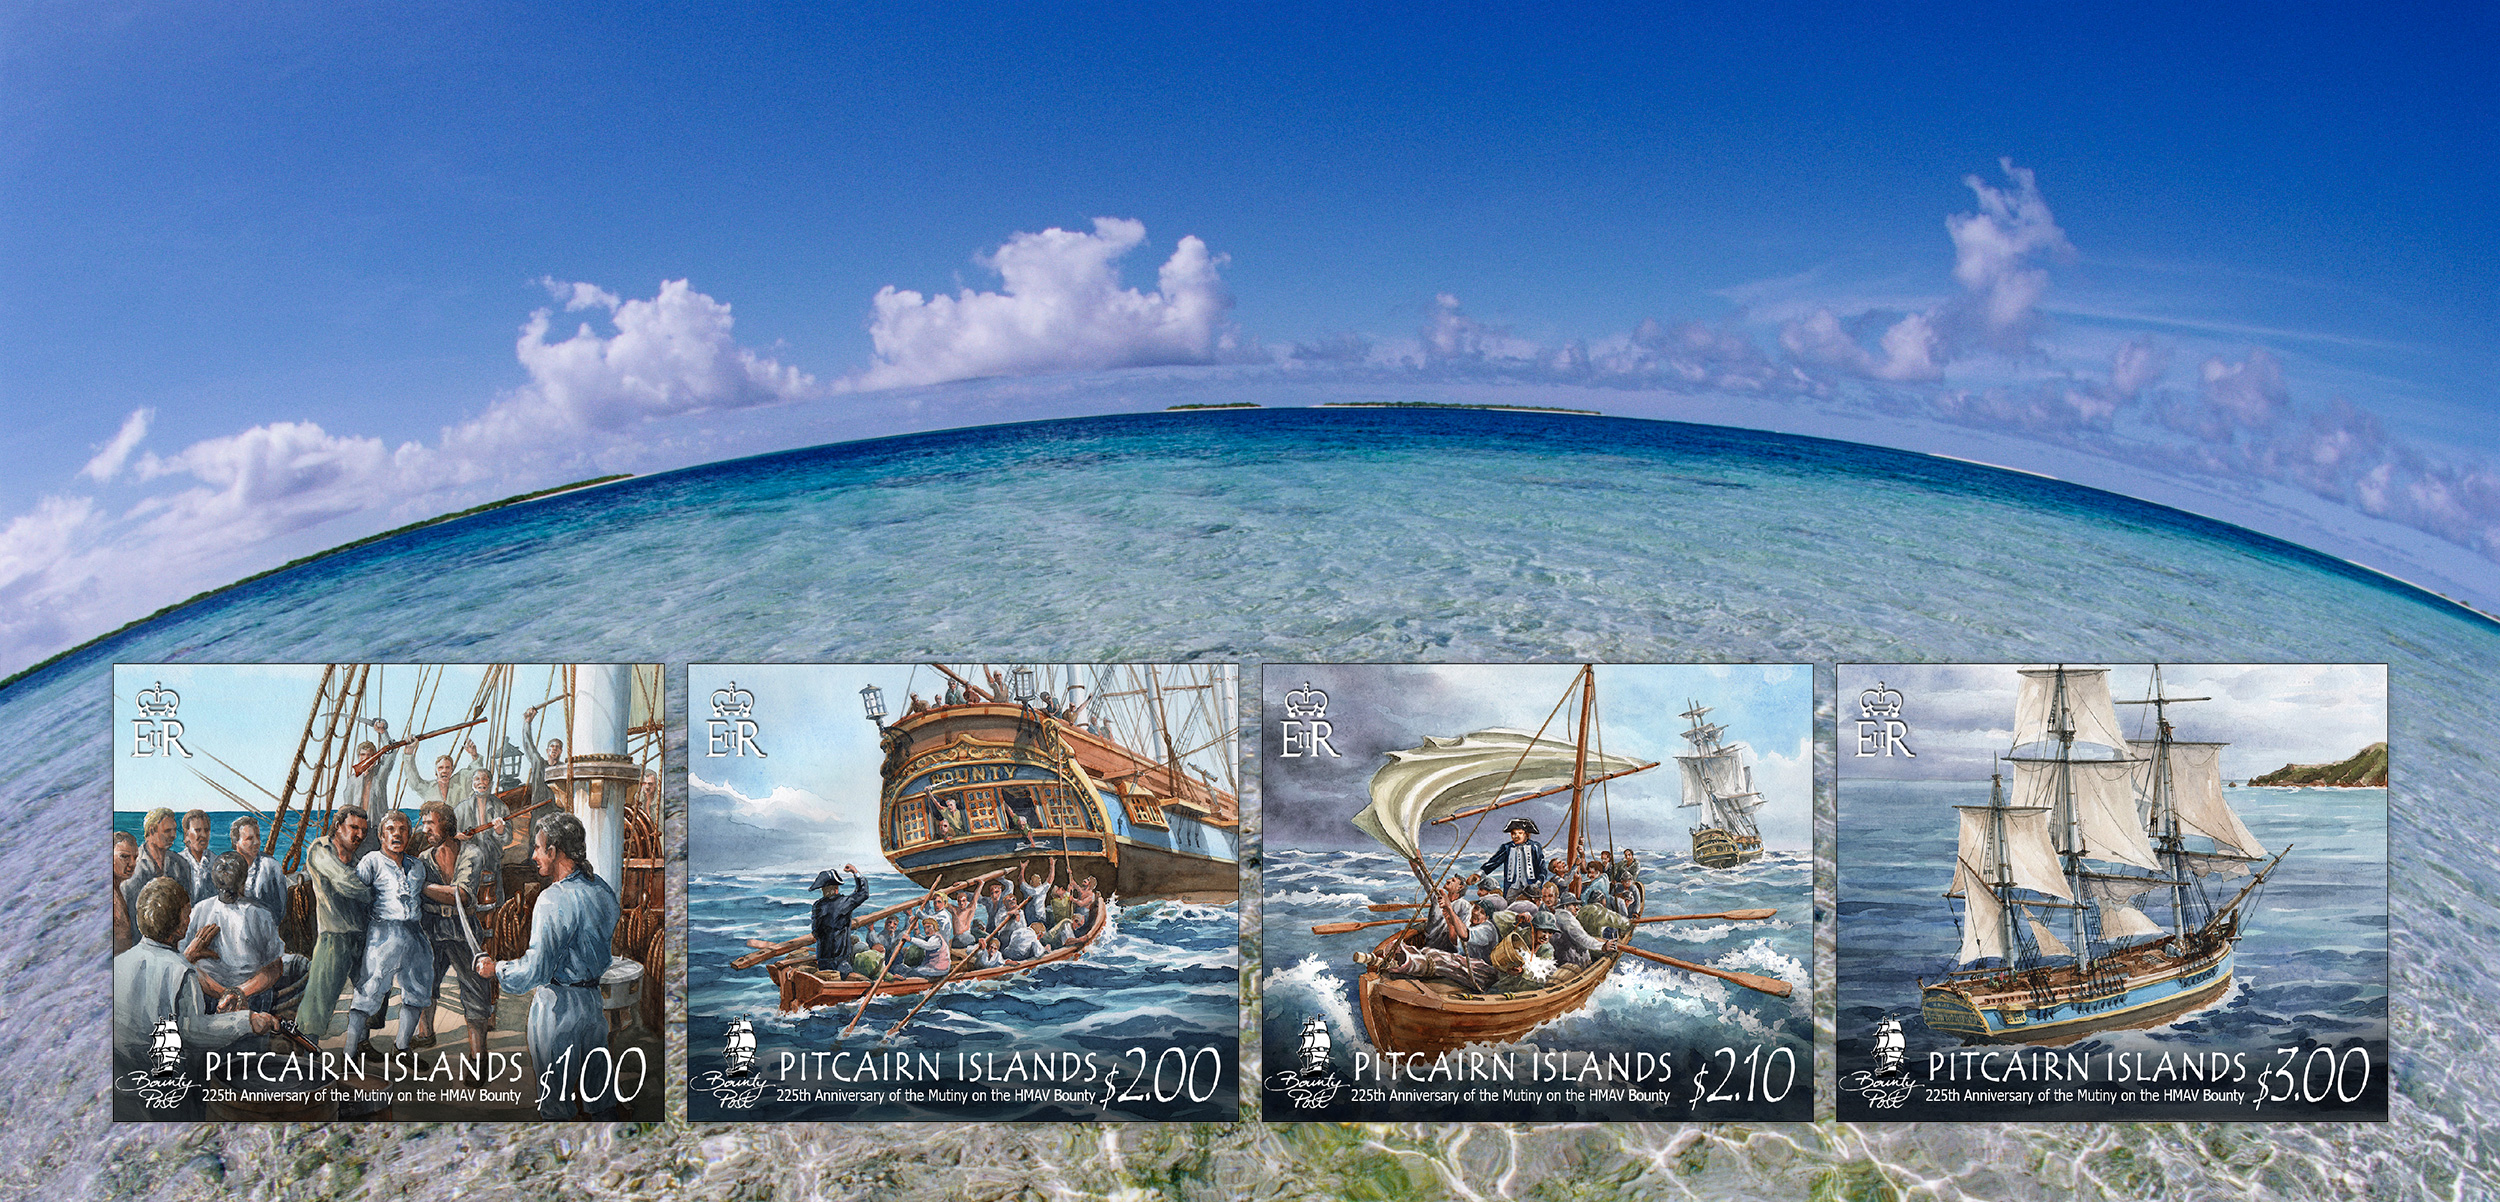 These four postage stamps depict the anchoring moments in one of the most extraordinary events in maritime history: the mutiny aboard HMS Bounty. Background photo by Darrell Gulin/Corbis